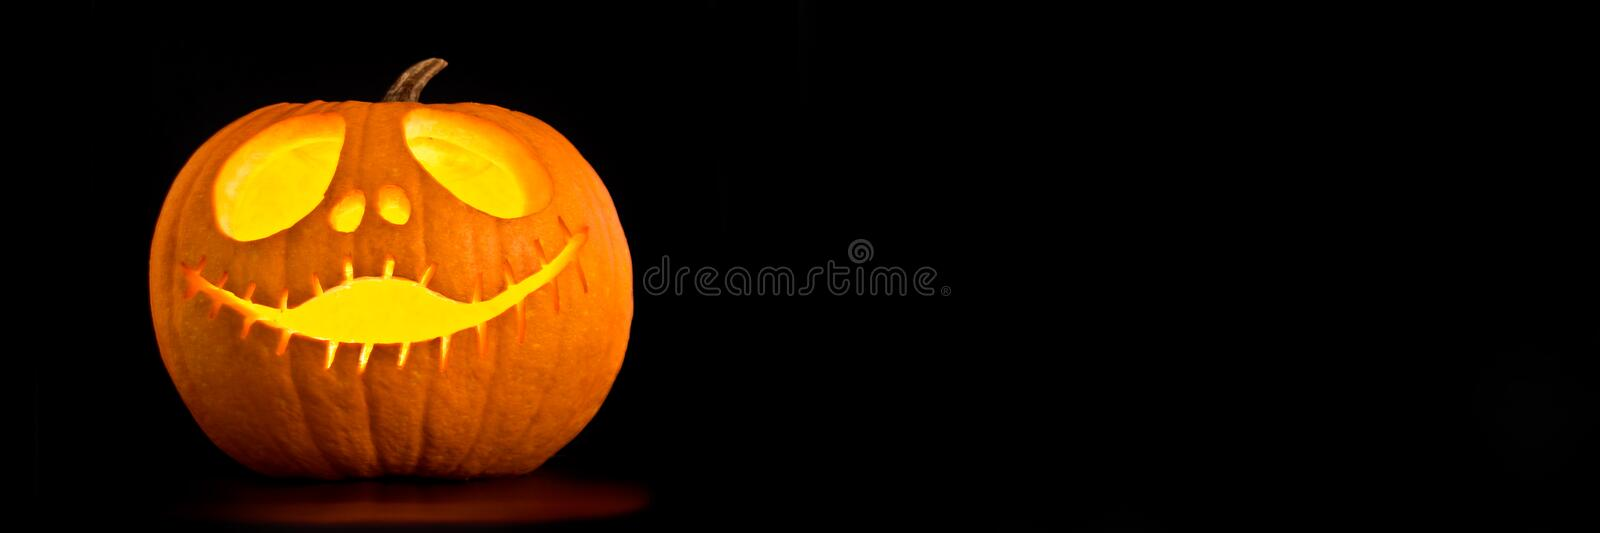 Illuminated Halloween Jack-o-lantern pumpkin black panoramic background with copy space. Illuminated Halloween Jack-o-lantern pumpkin, black panoramic background stock images